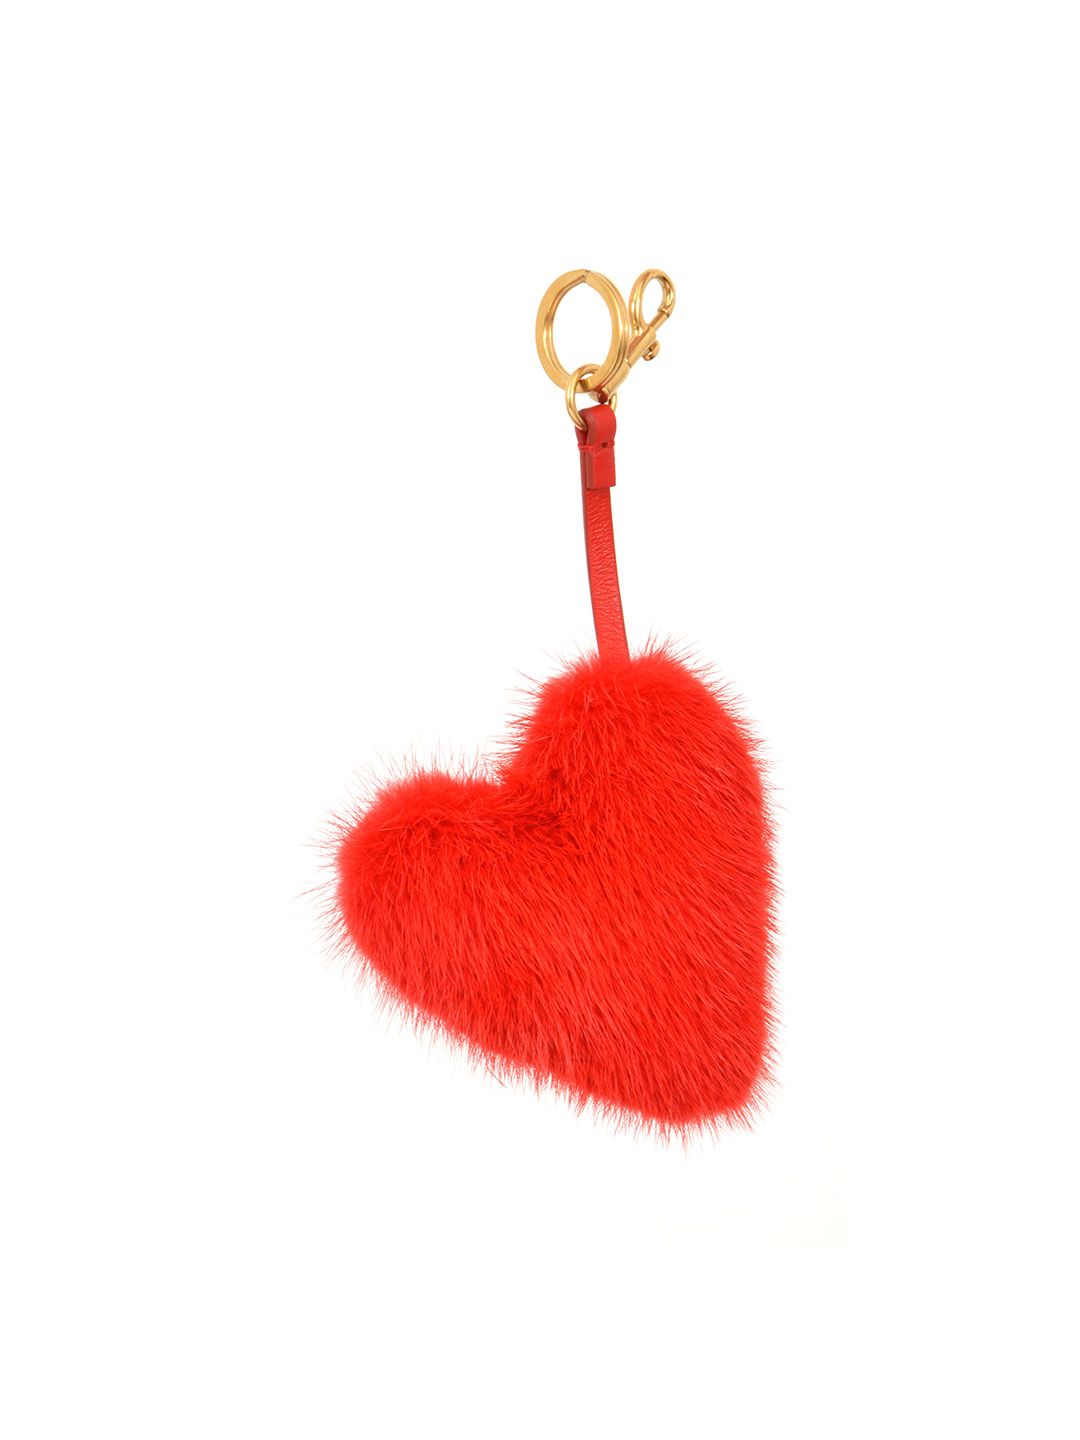 Anya Hindmarch Heart Mink Fur Charm